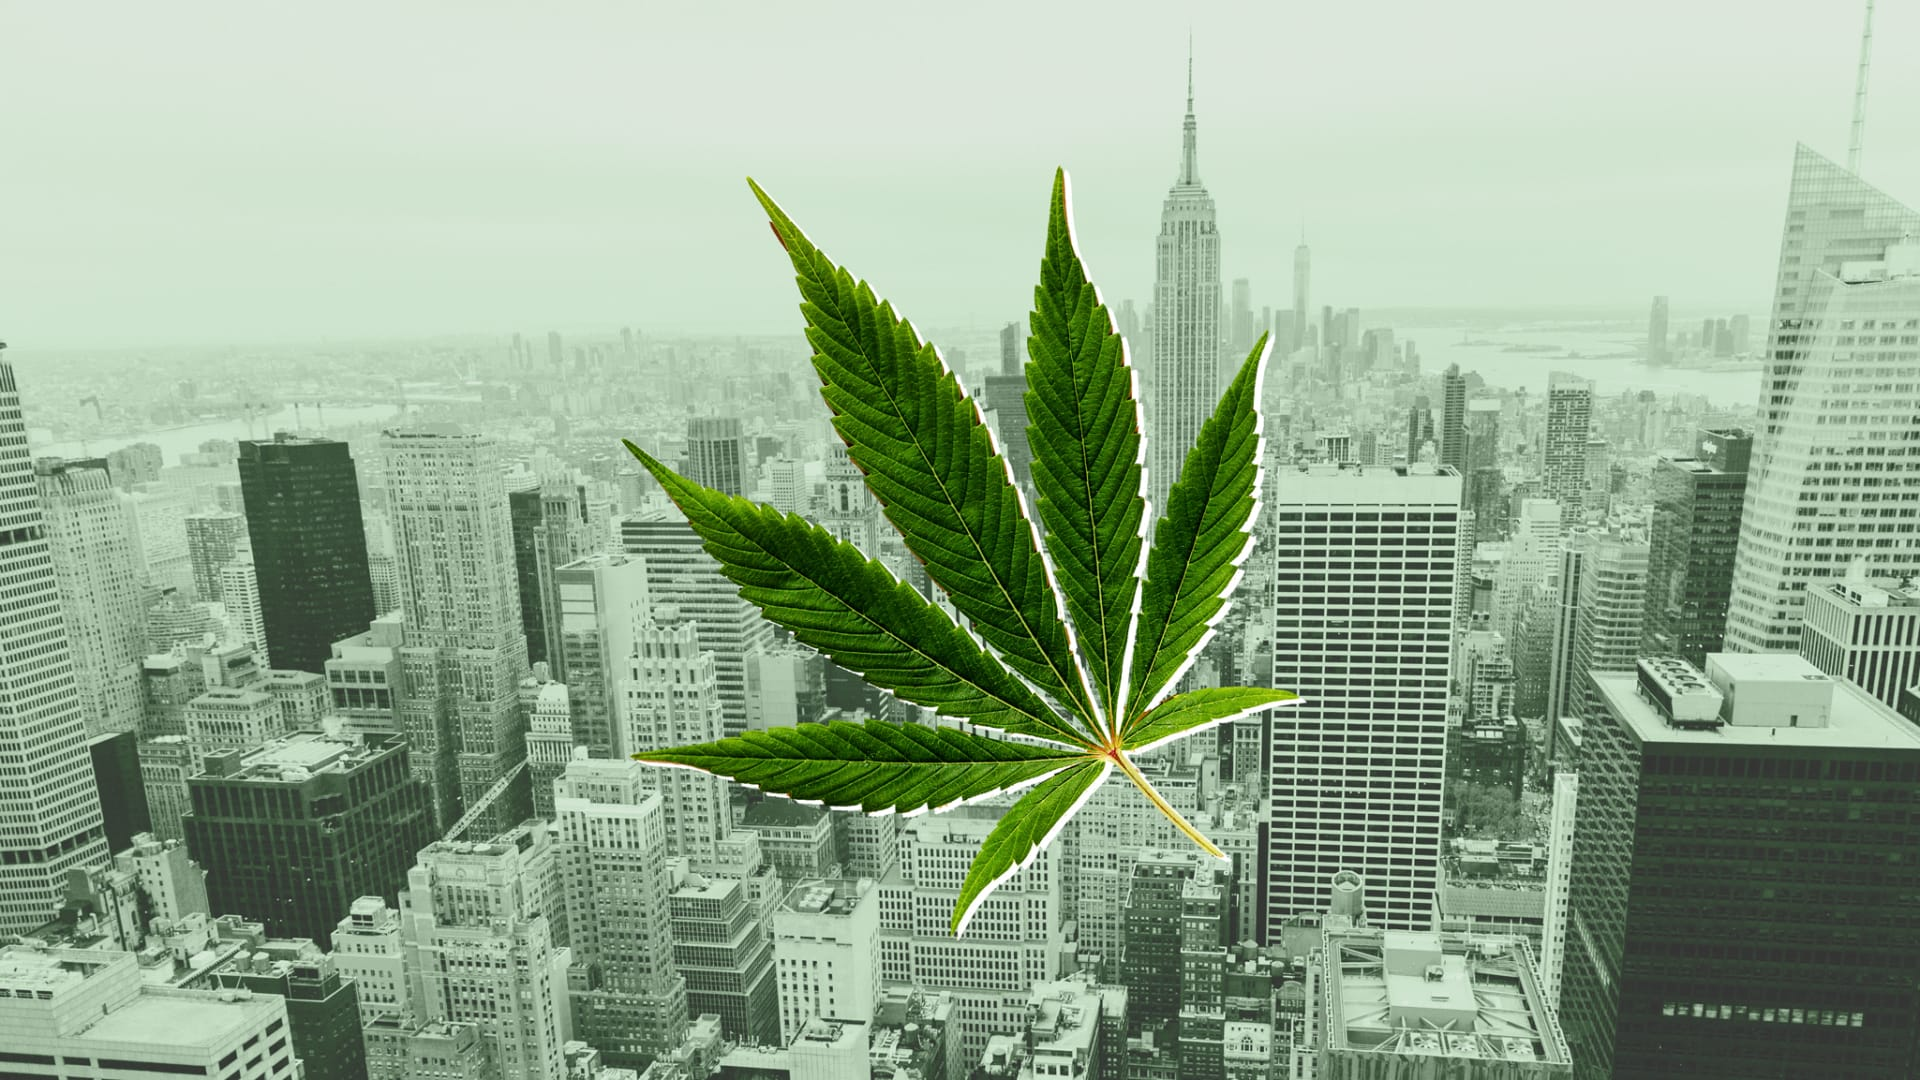 At $1 Billion Expected in Its First Year, New York's Legal Cannabis Market Means Business